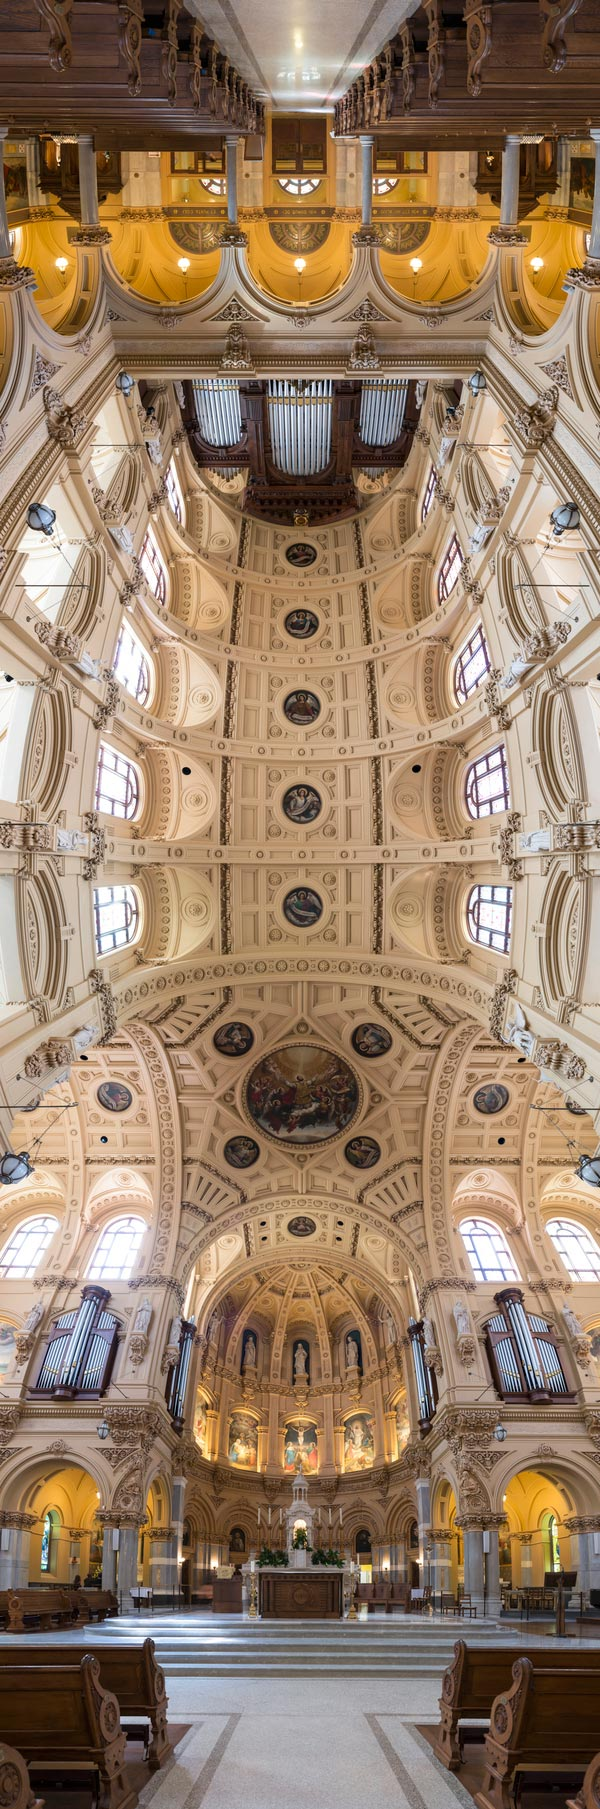 vertical panoramas of church ceilings 1 Hypnotic Views of the Sagrada Familia Ceiling by Clement Celma